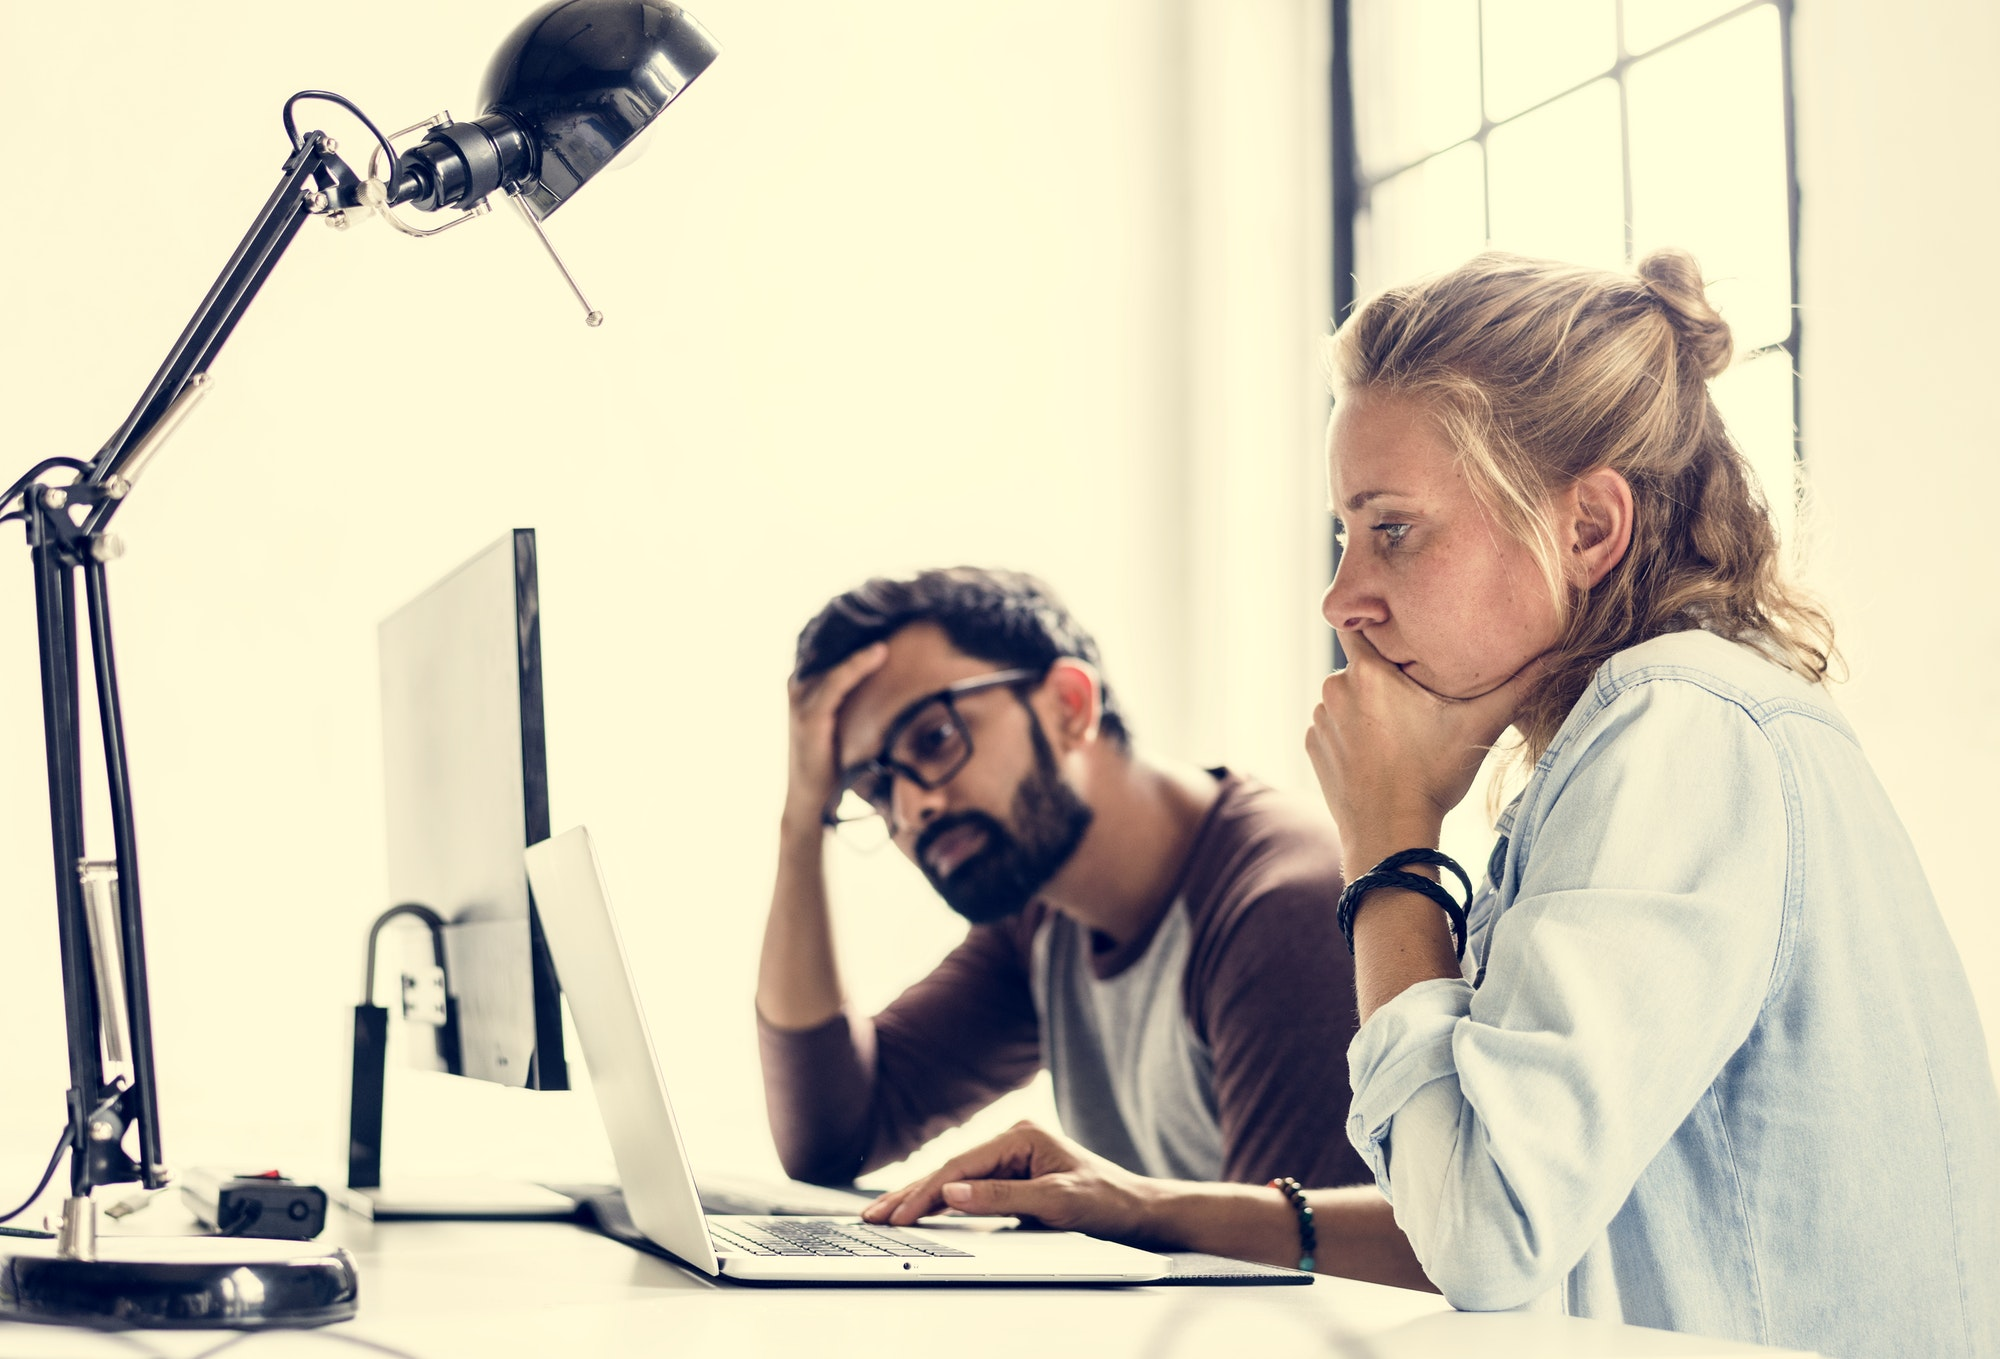 People thinking about to fix something on computer